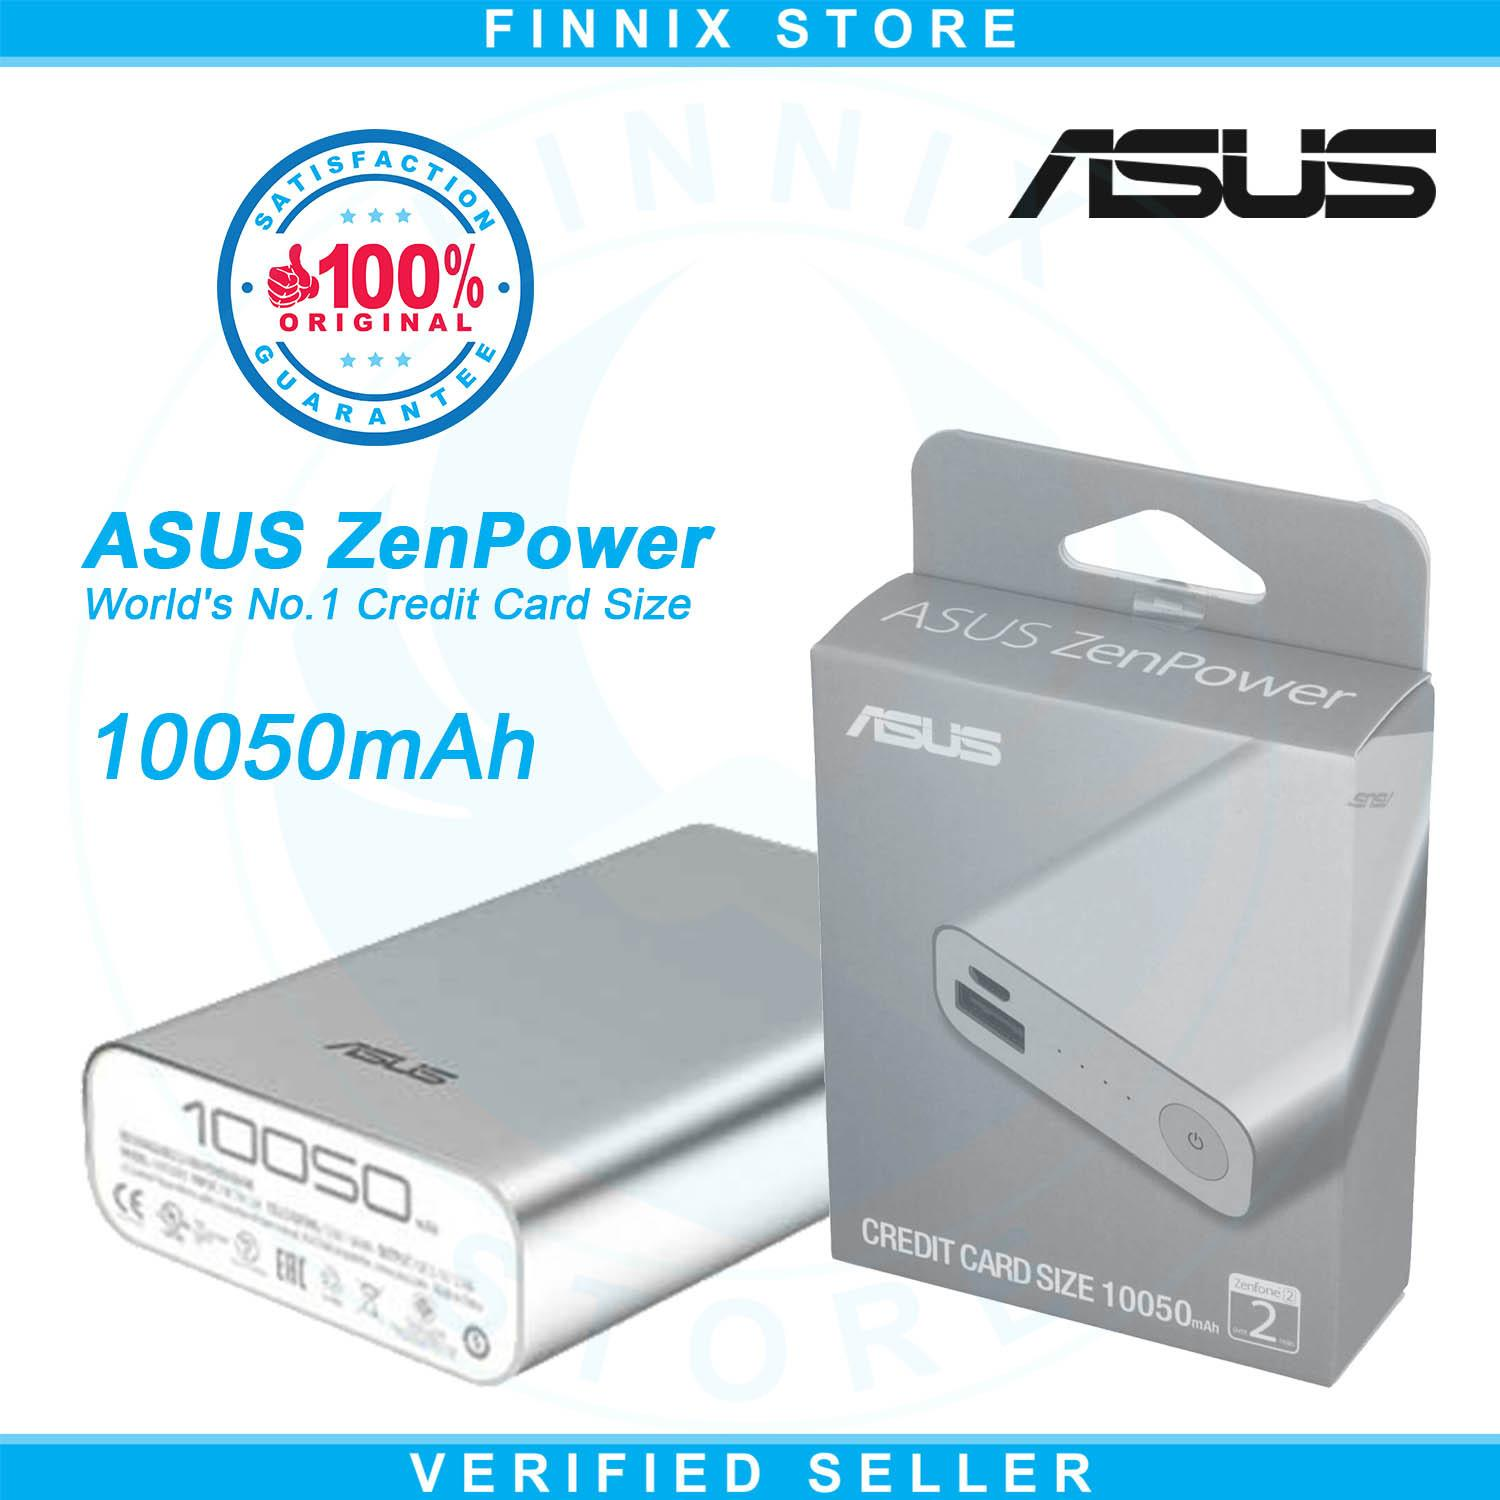 Beli Barang Asus Zenpower 10050Mah Power Bank Asus 10050Mah Fast Charging Online